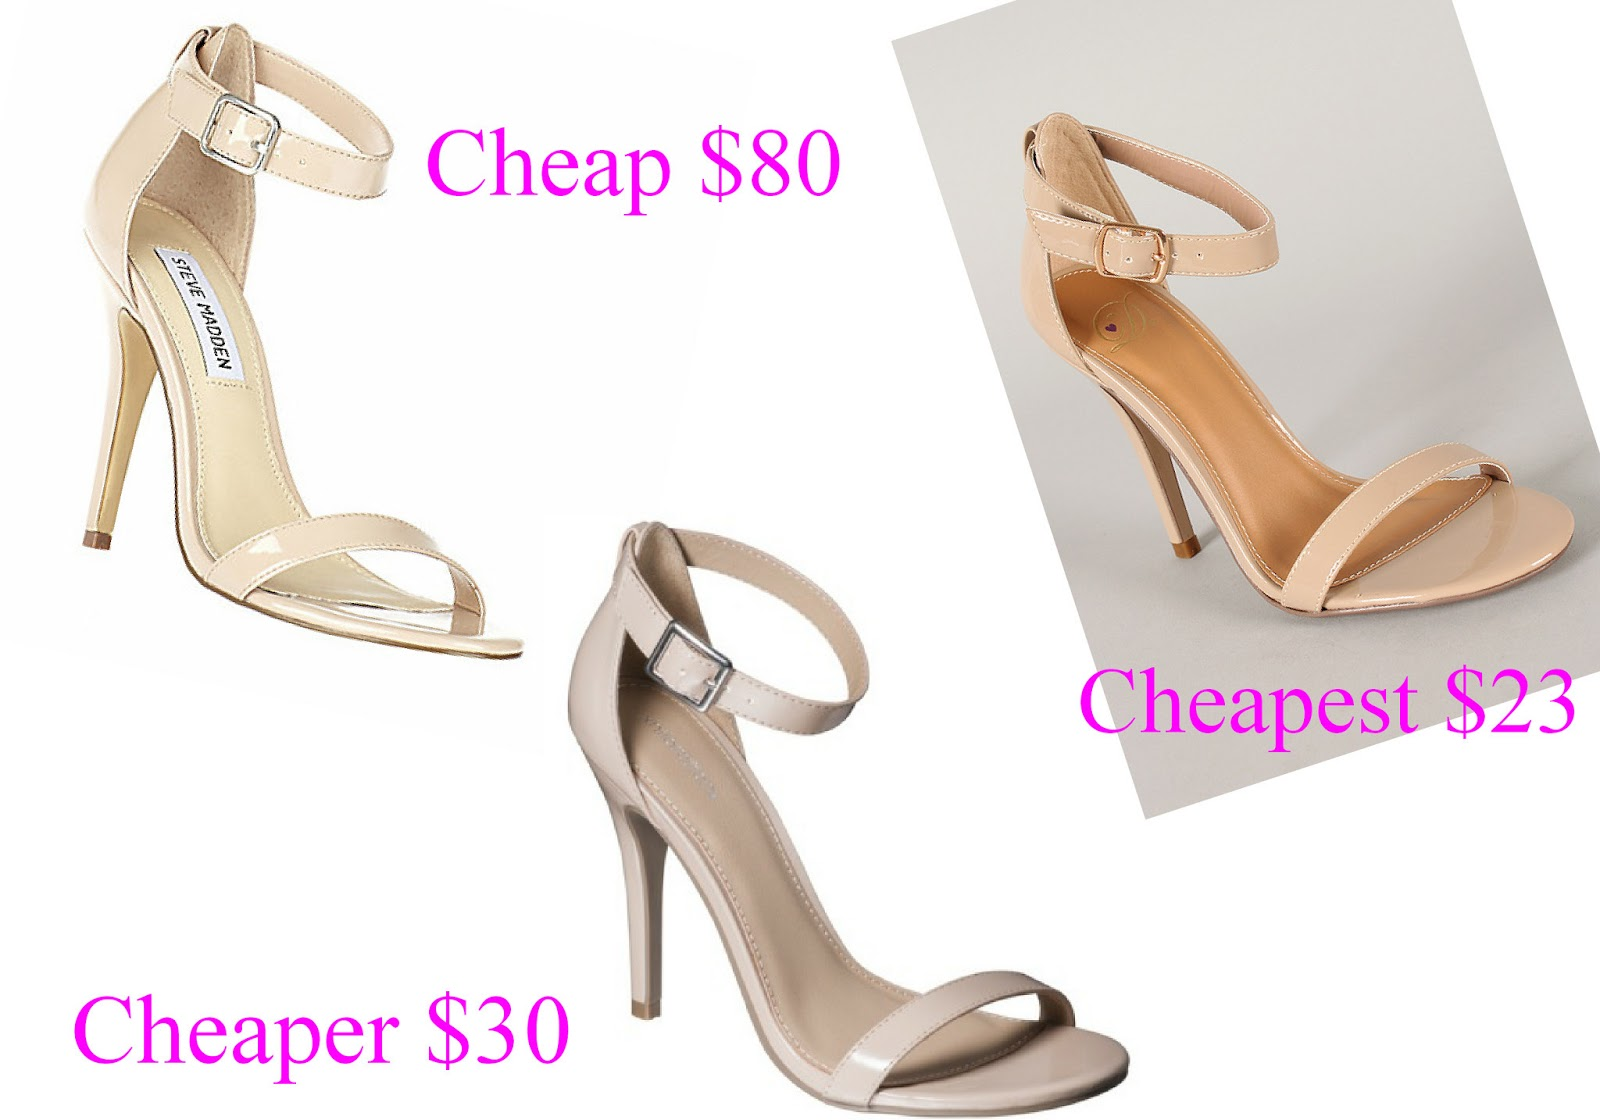 Cheapalicious: Cheap Cheaper Cheapest: Nude ankle strap heels